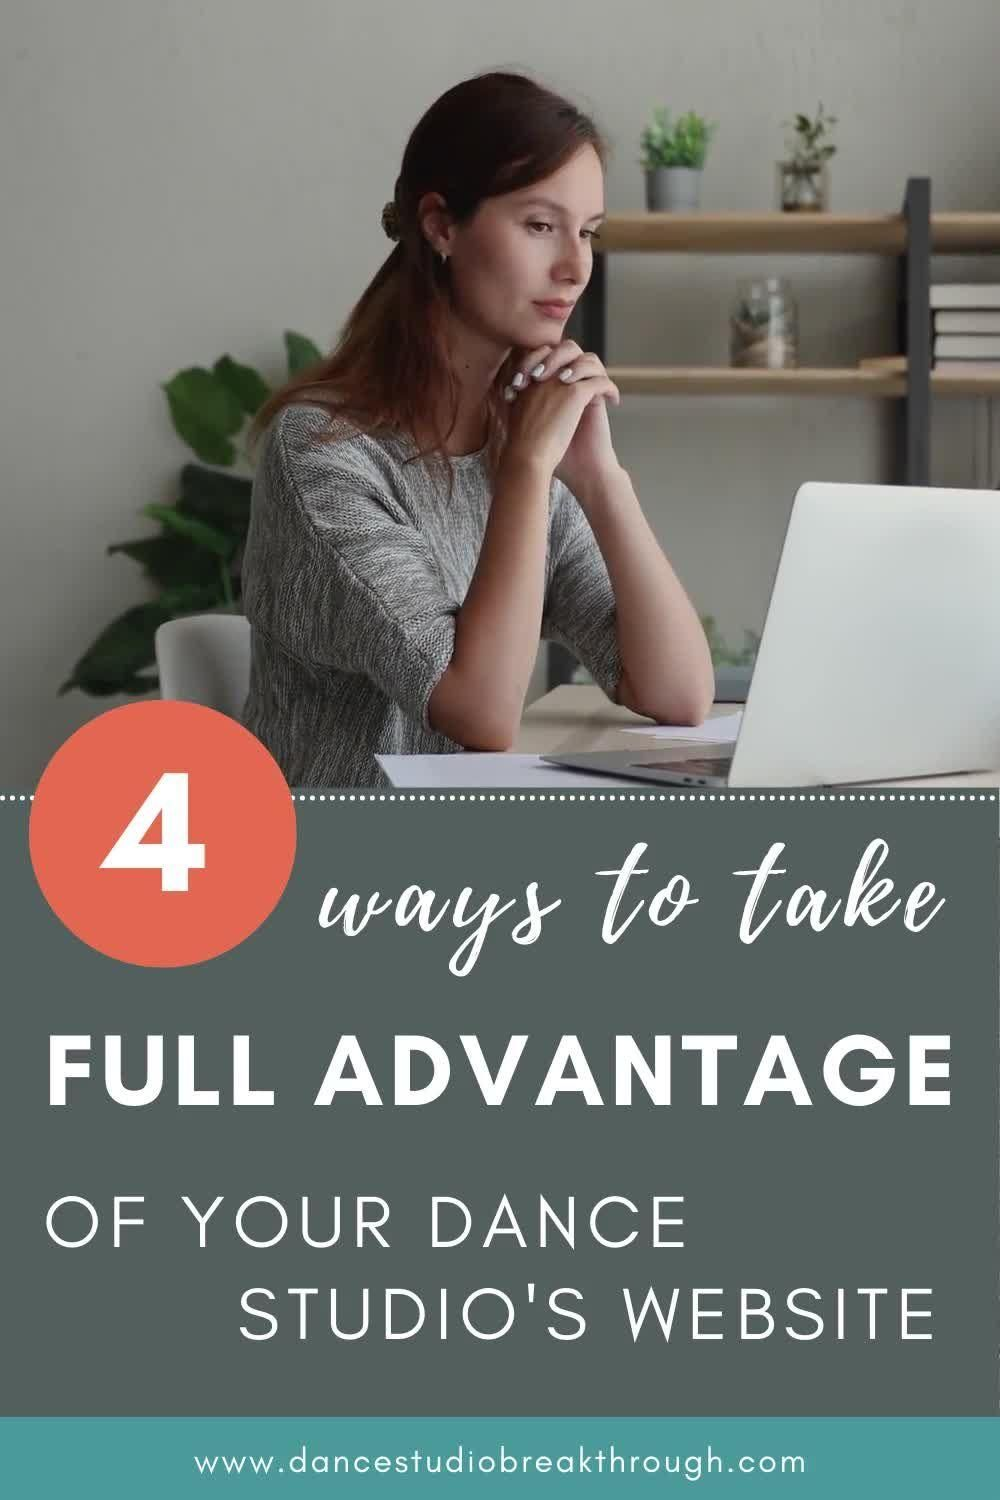 How to Maximize the Benefits of Your Dance Studio